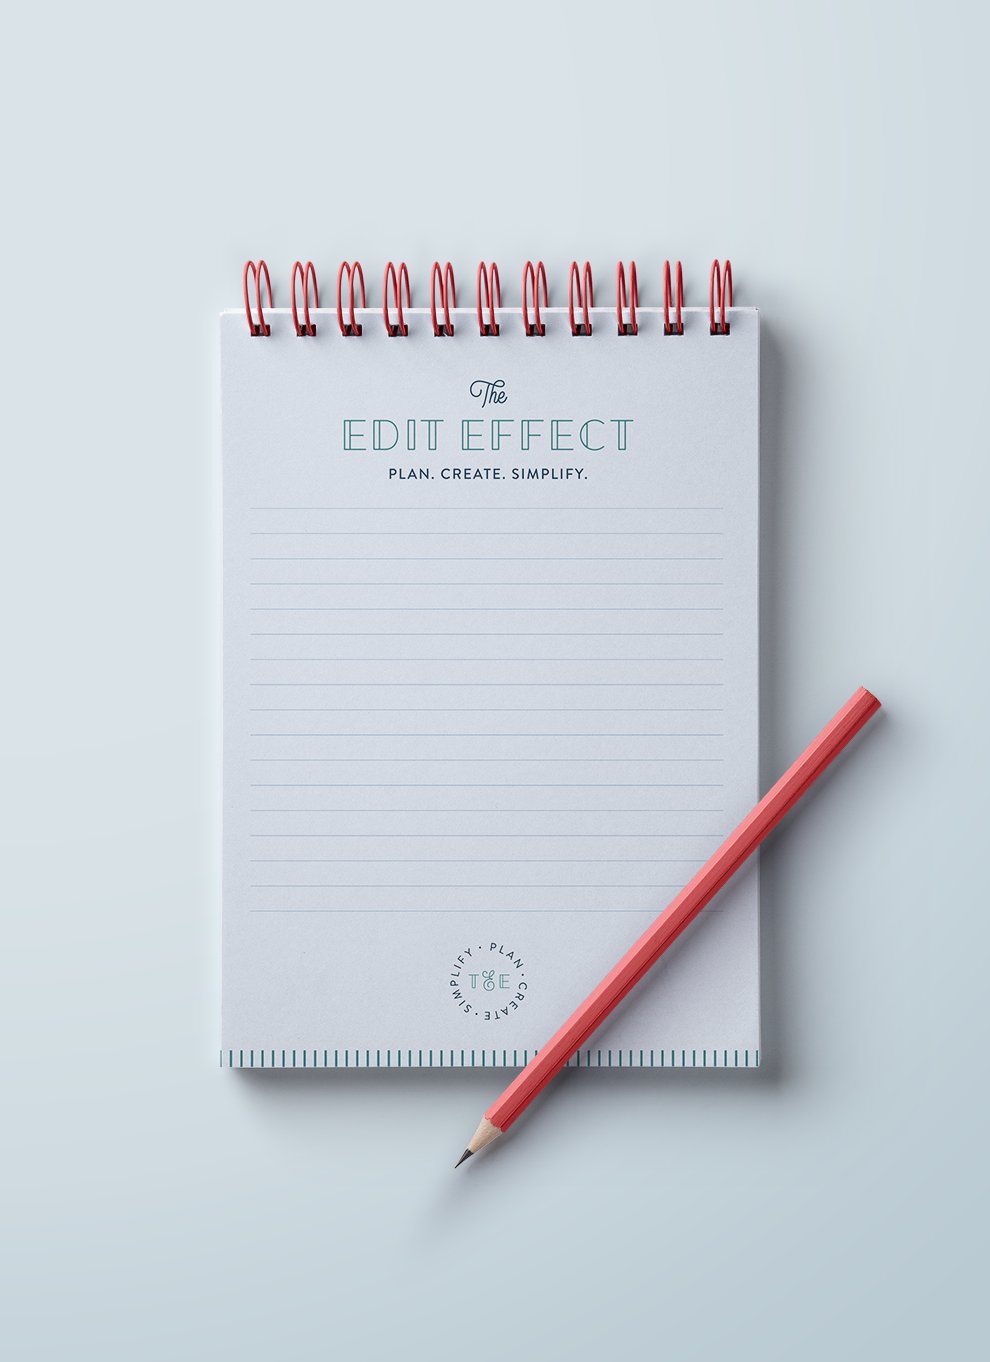 TheEditEffect_Mockup_1.png